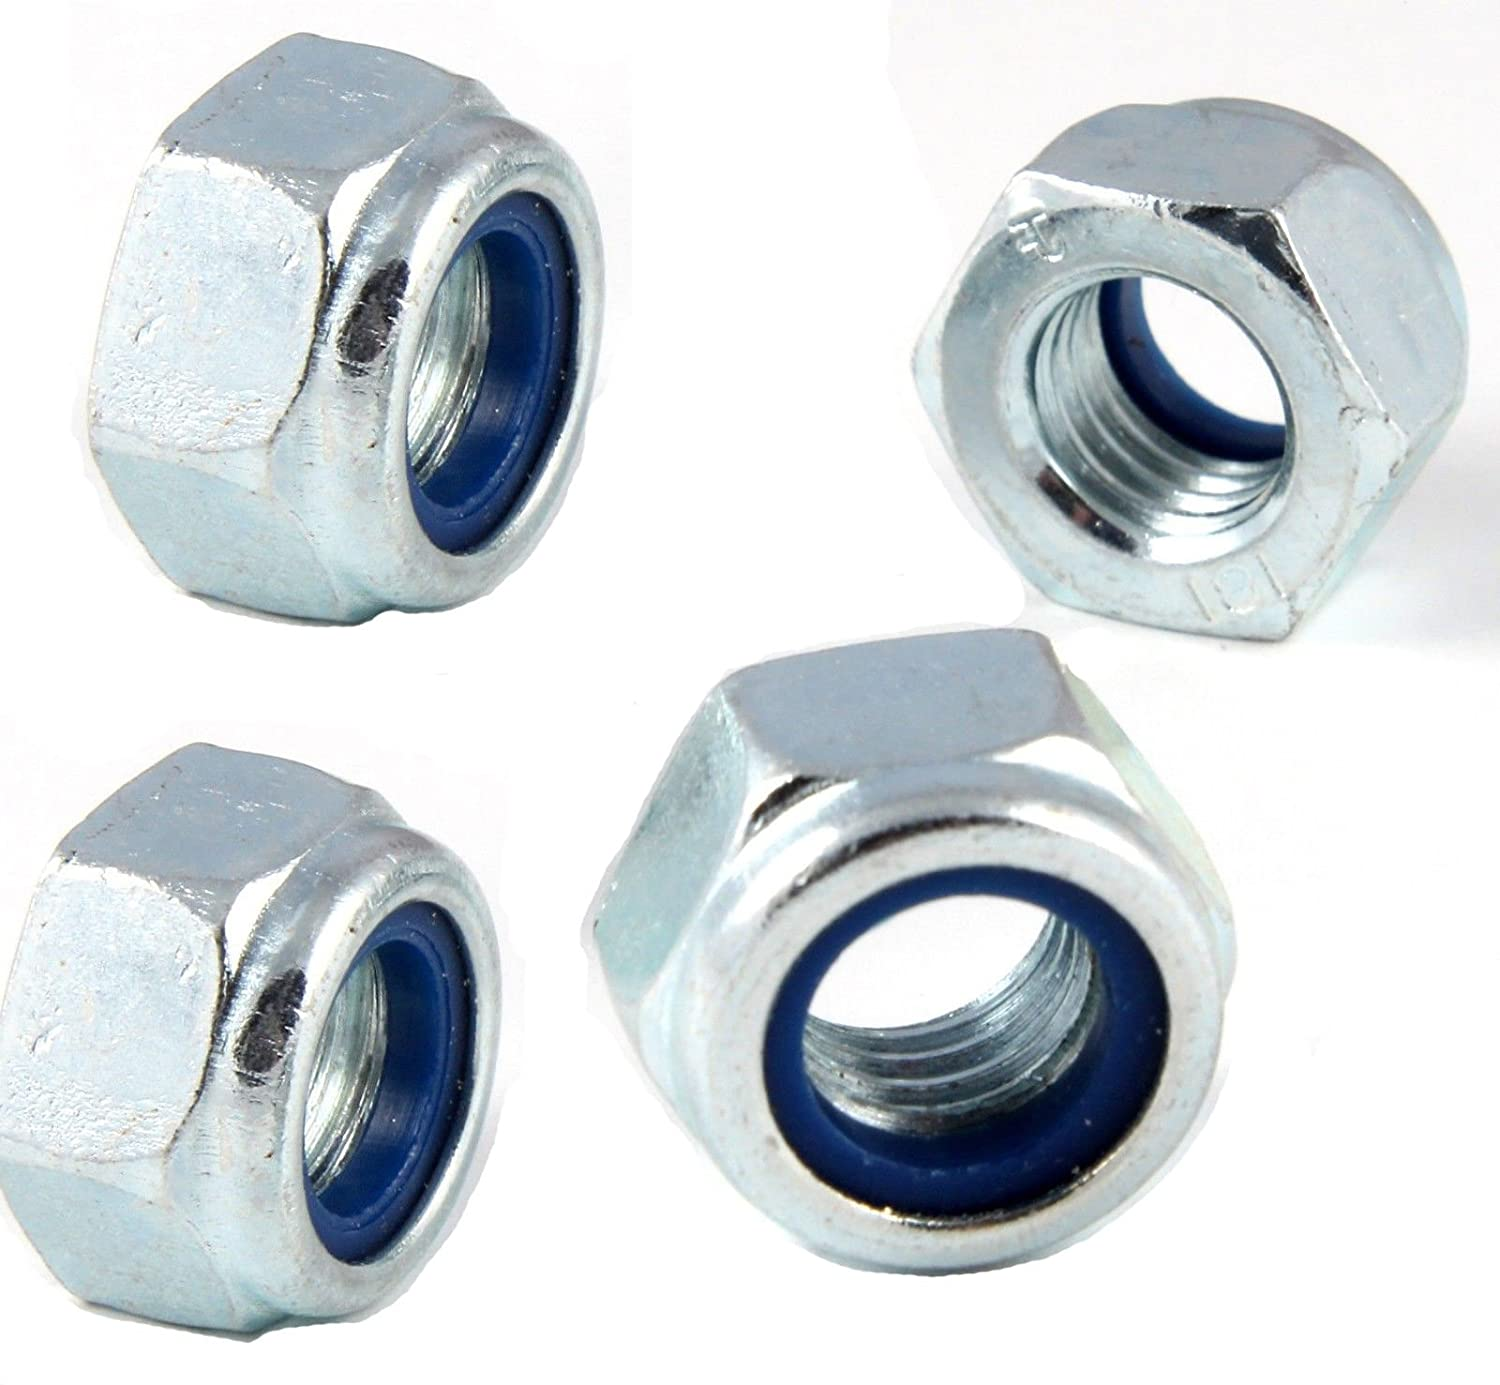 Metric Hexagon Nyloc Nylon Insert Locking Nuts M24 x 3.0mm Pitch Bright Zinc Plated Grade 6 (Pack of 4) J&A Racing